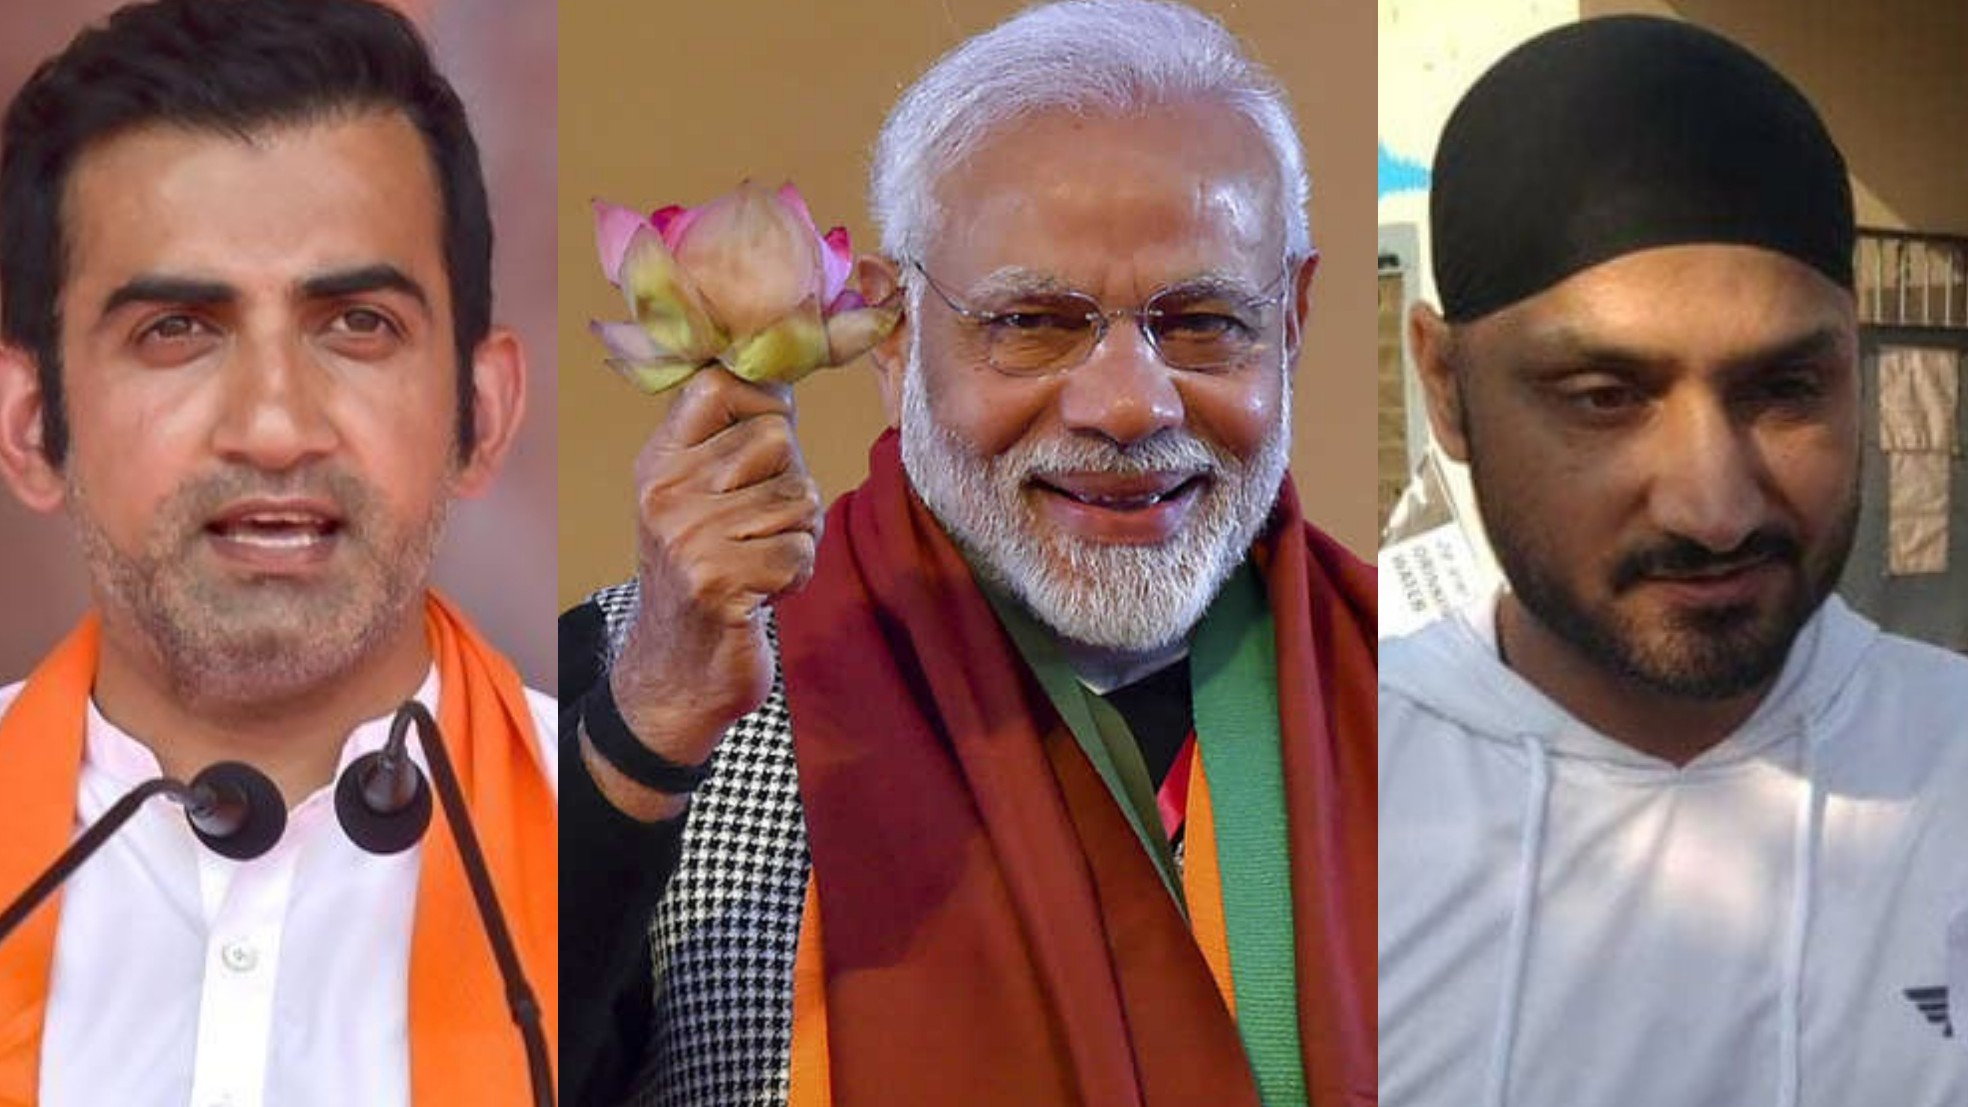 Indian Cricket Fraternity congratulates PM Narendra Modi, as BJP-NDA sweeps 2019 polls